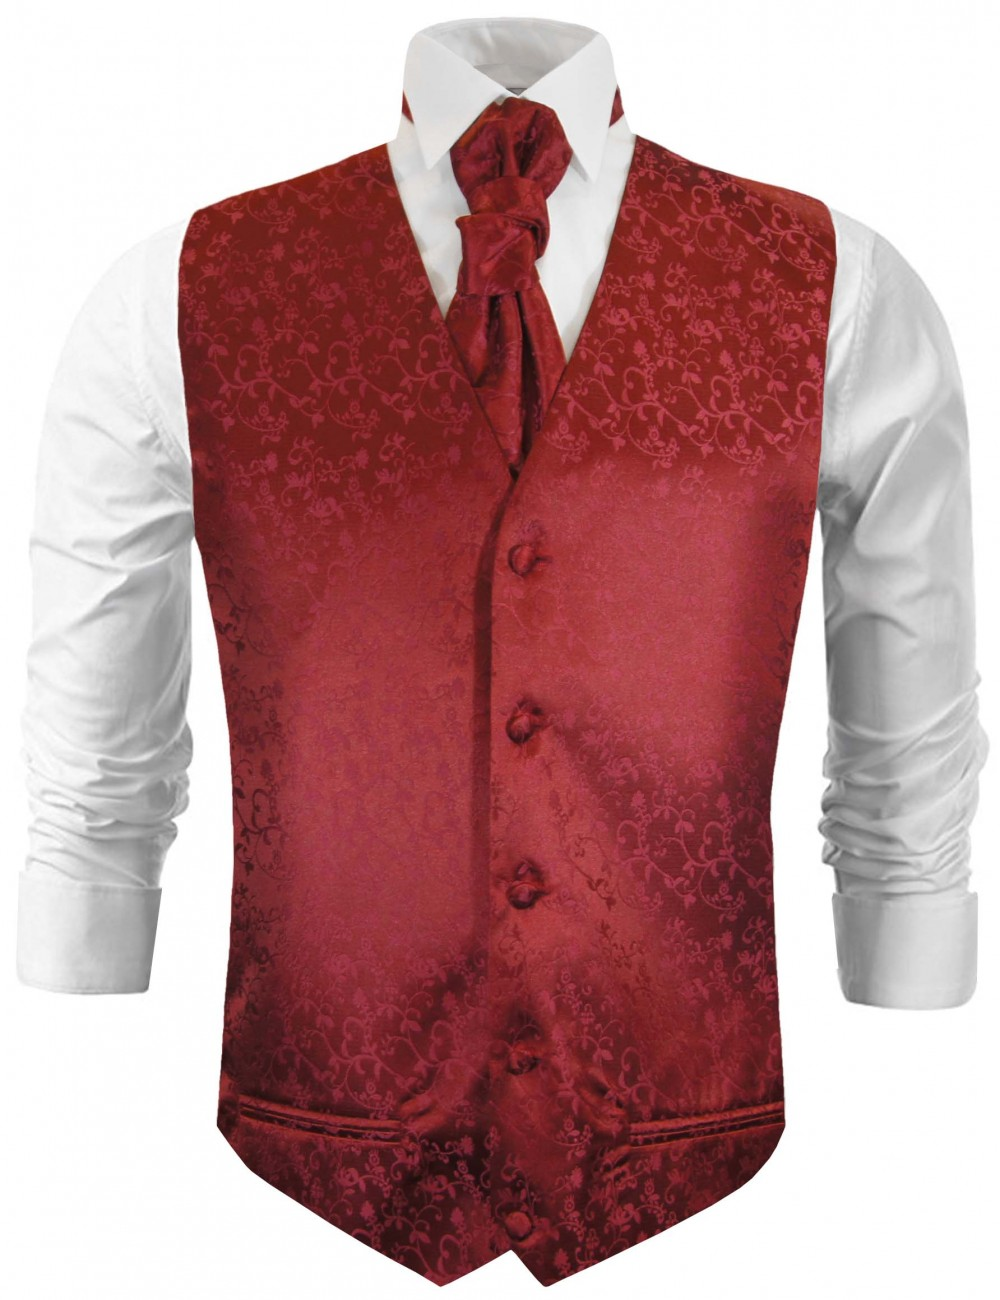 Burgundy red wedding vest floral waistcoat with cravat